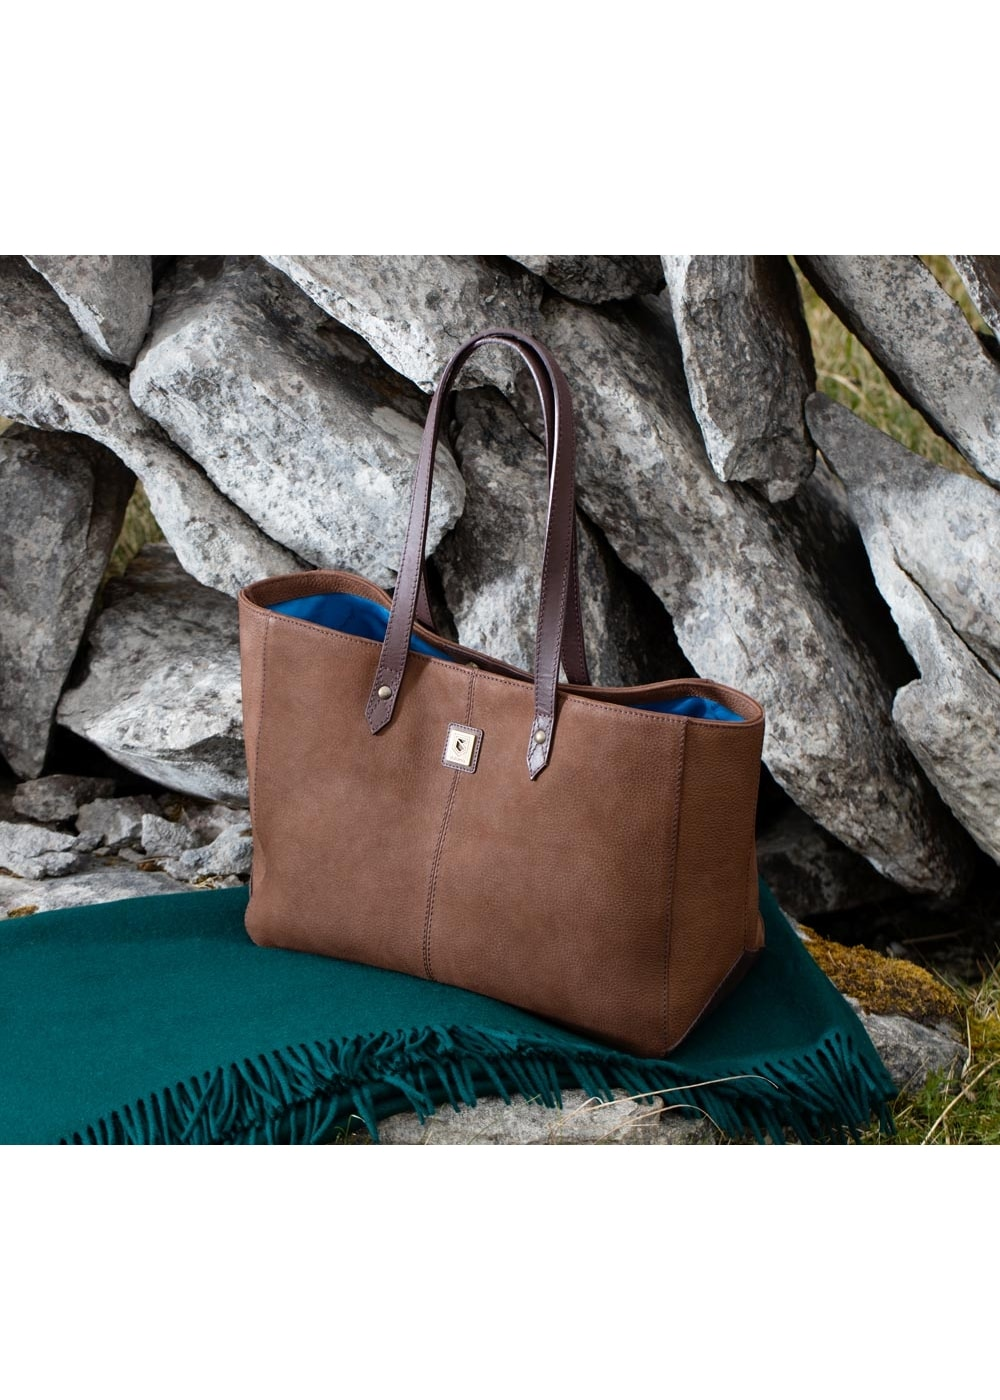 ef45bc62ada0 Dubarry Baltinglass Tote Bag - Ladies from A Hume UK